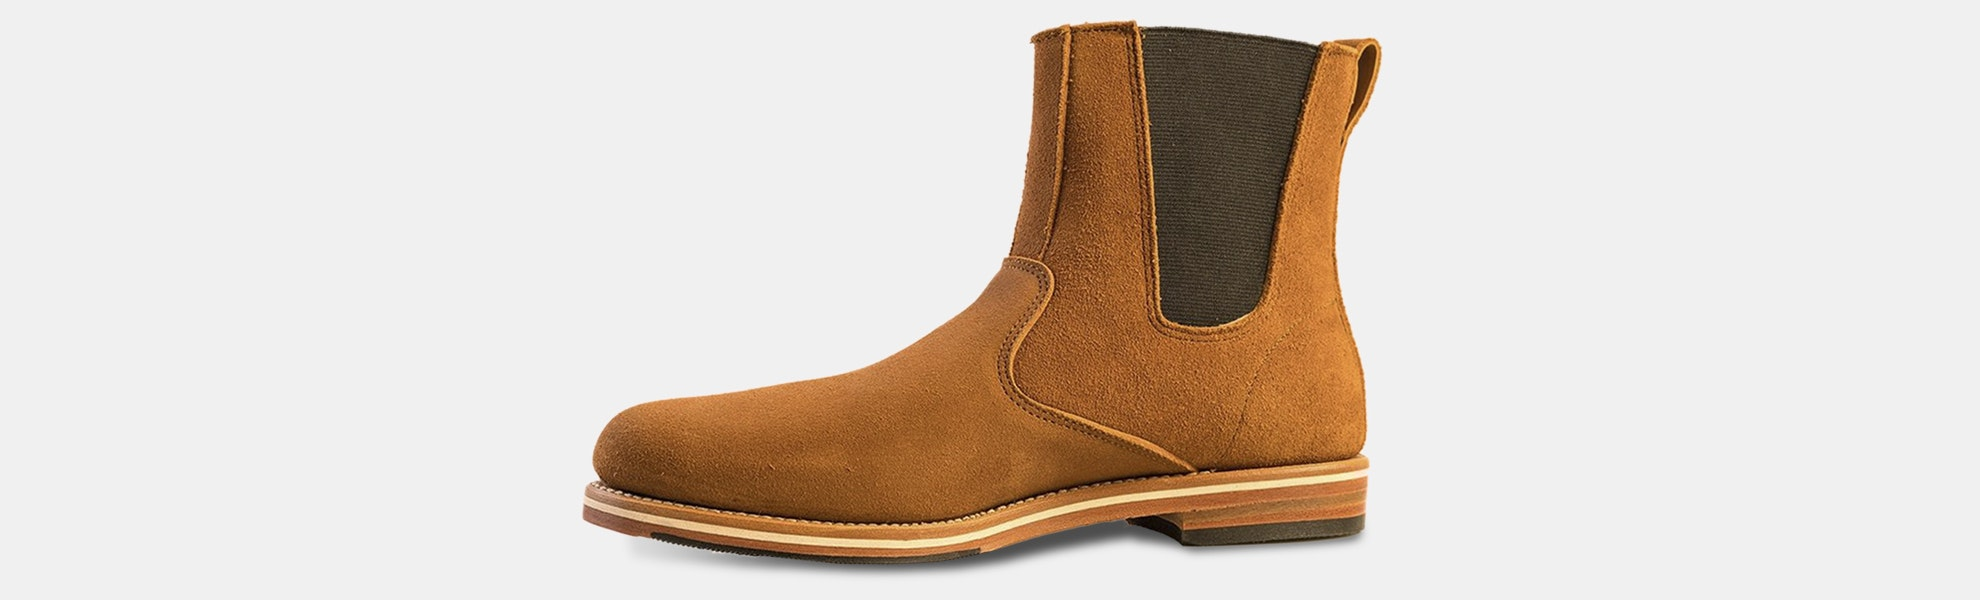 HELM Boots Riley Chelsea Boot